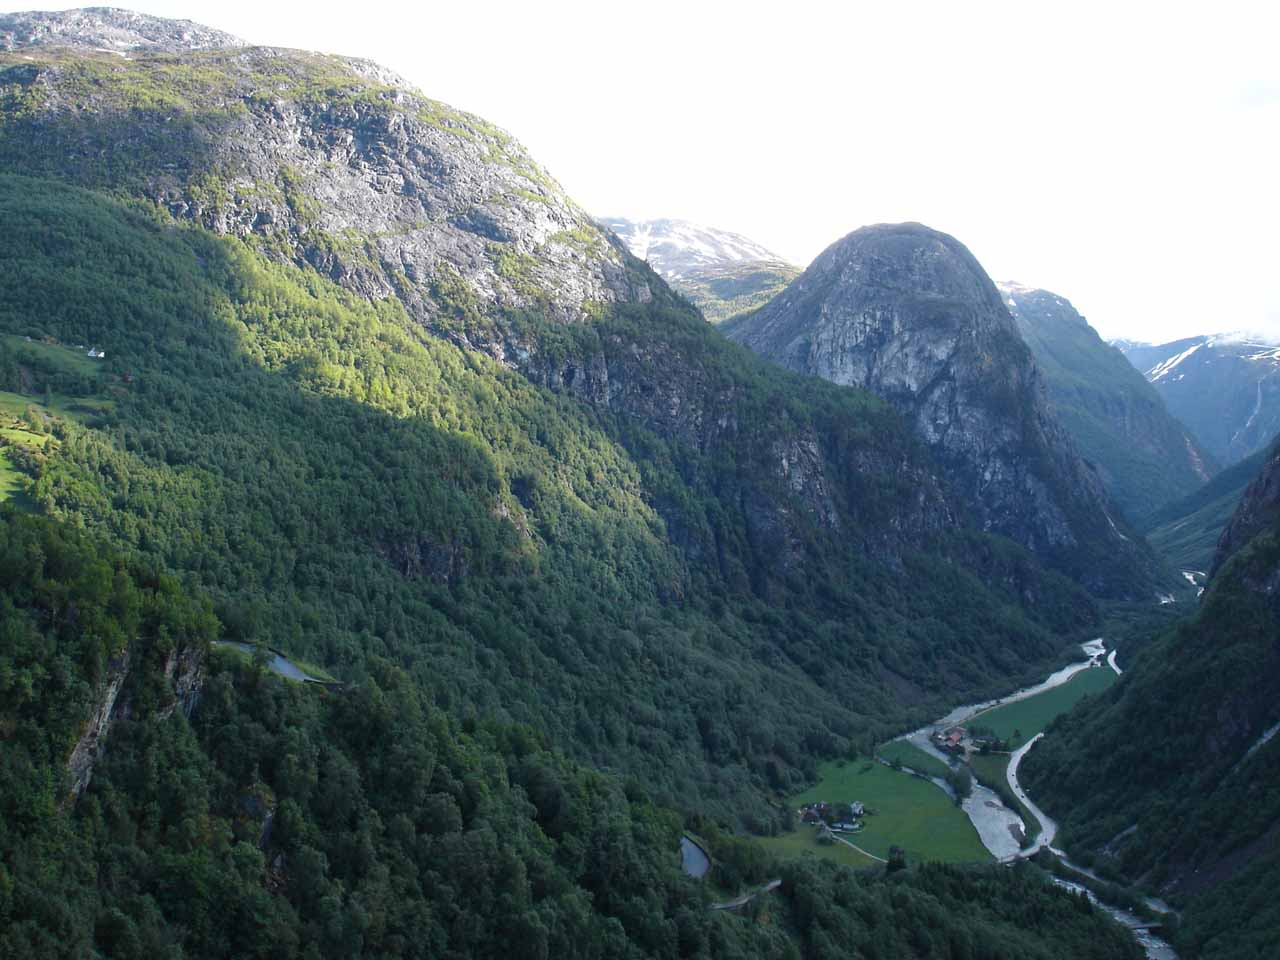 Our brief (and rainy) visit into Modalen was followed up the next day by a drive into the beautiful Nærøydal Valley after descending Stalheimskleiva